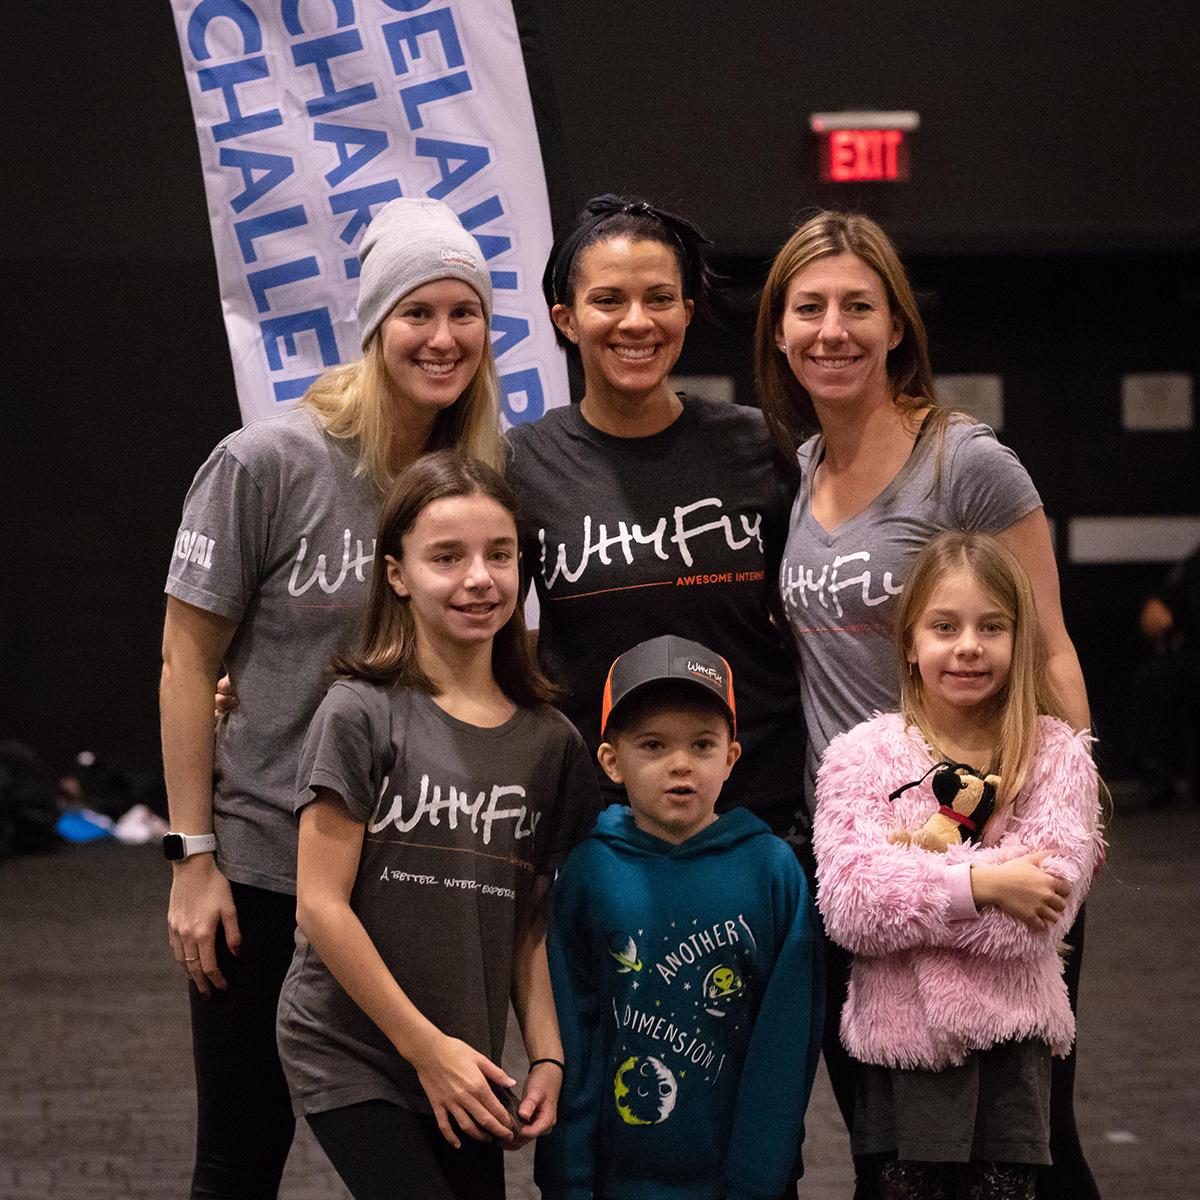 WhyFly Team Awesome smiles for the camera after competing in the Medley Team division of the 2019 Delaware Charity Challenge winter indoor triathlon. Photo credit  Four Youth Productions .